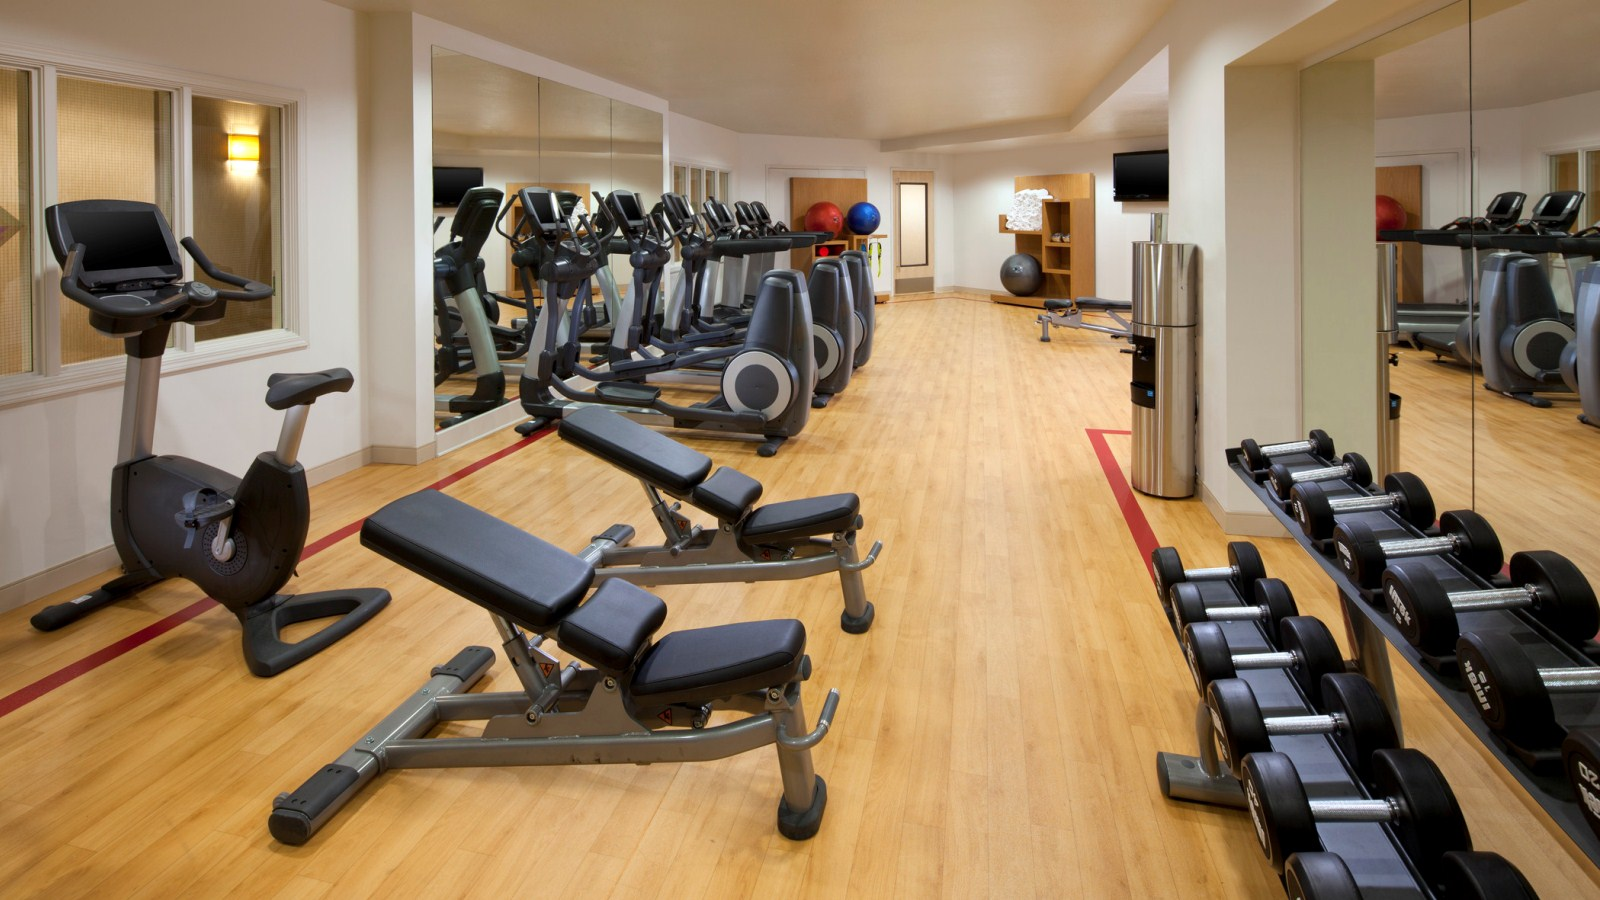 Stay active at the Sheraton Sonoma County - Petaluma hotel fitness center.